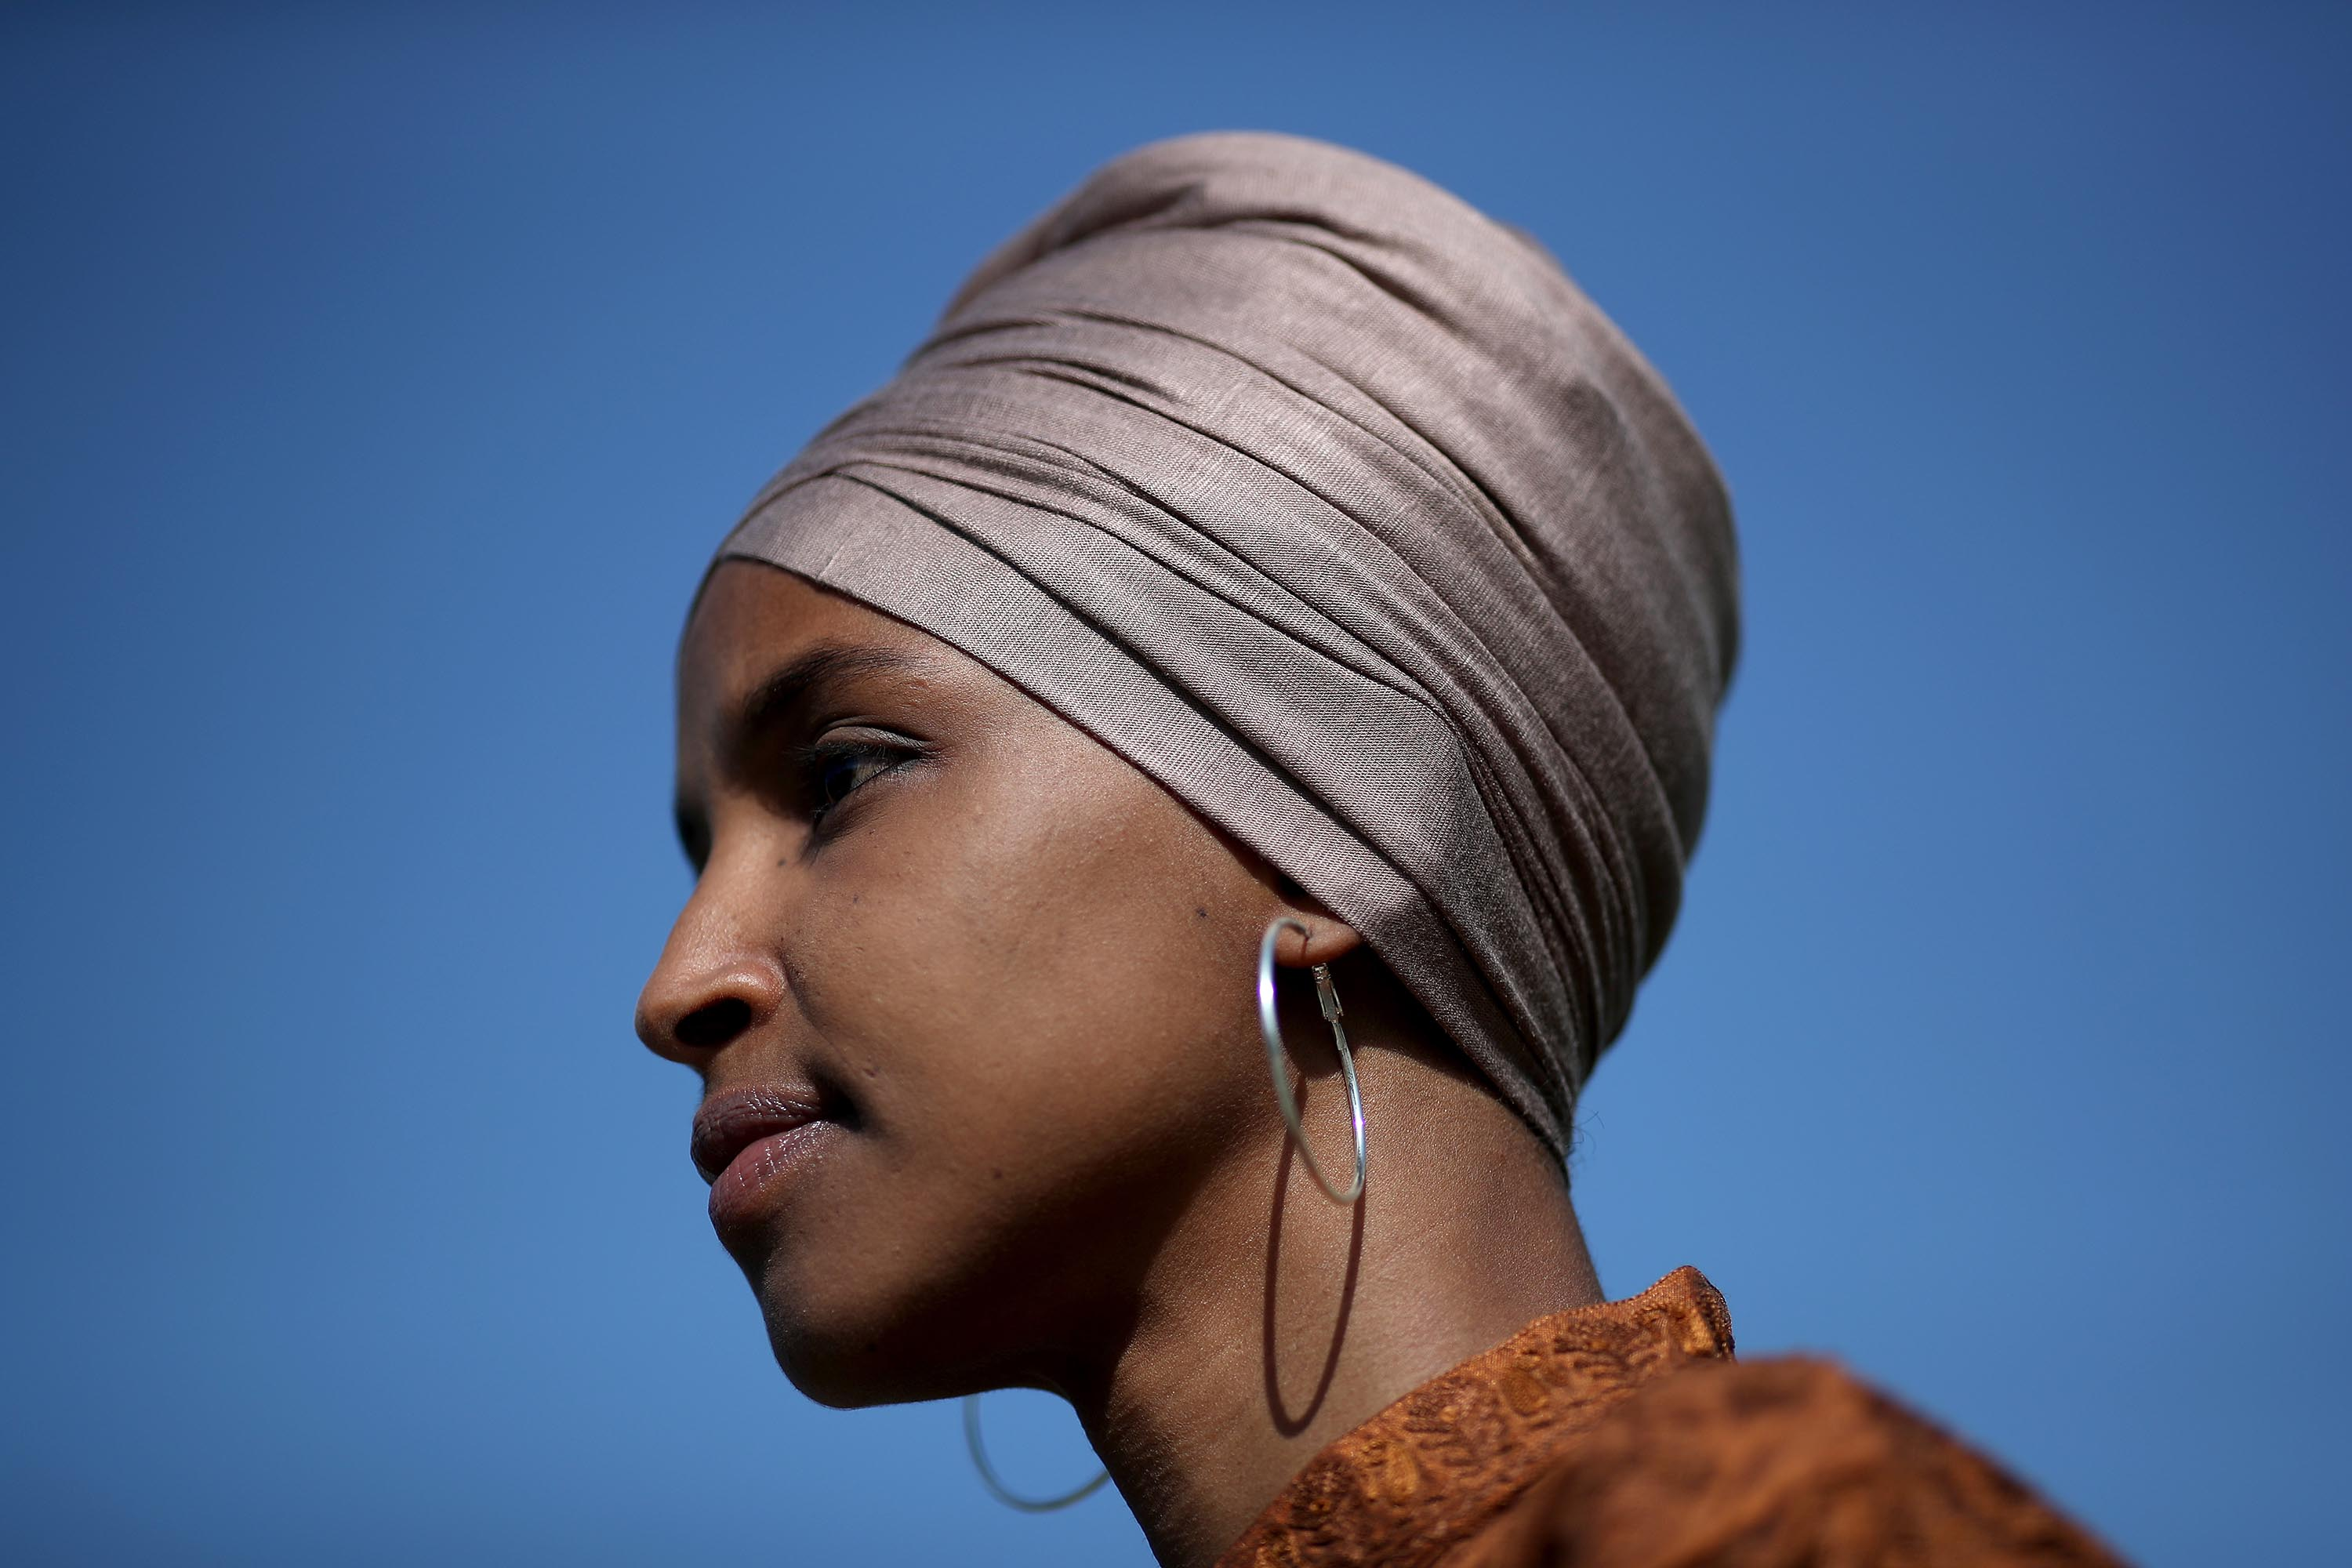 Rep. Ilhan Omar on Trump's racist attack: 'He spreads the disease of hate'